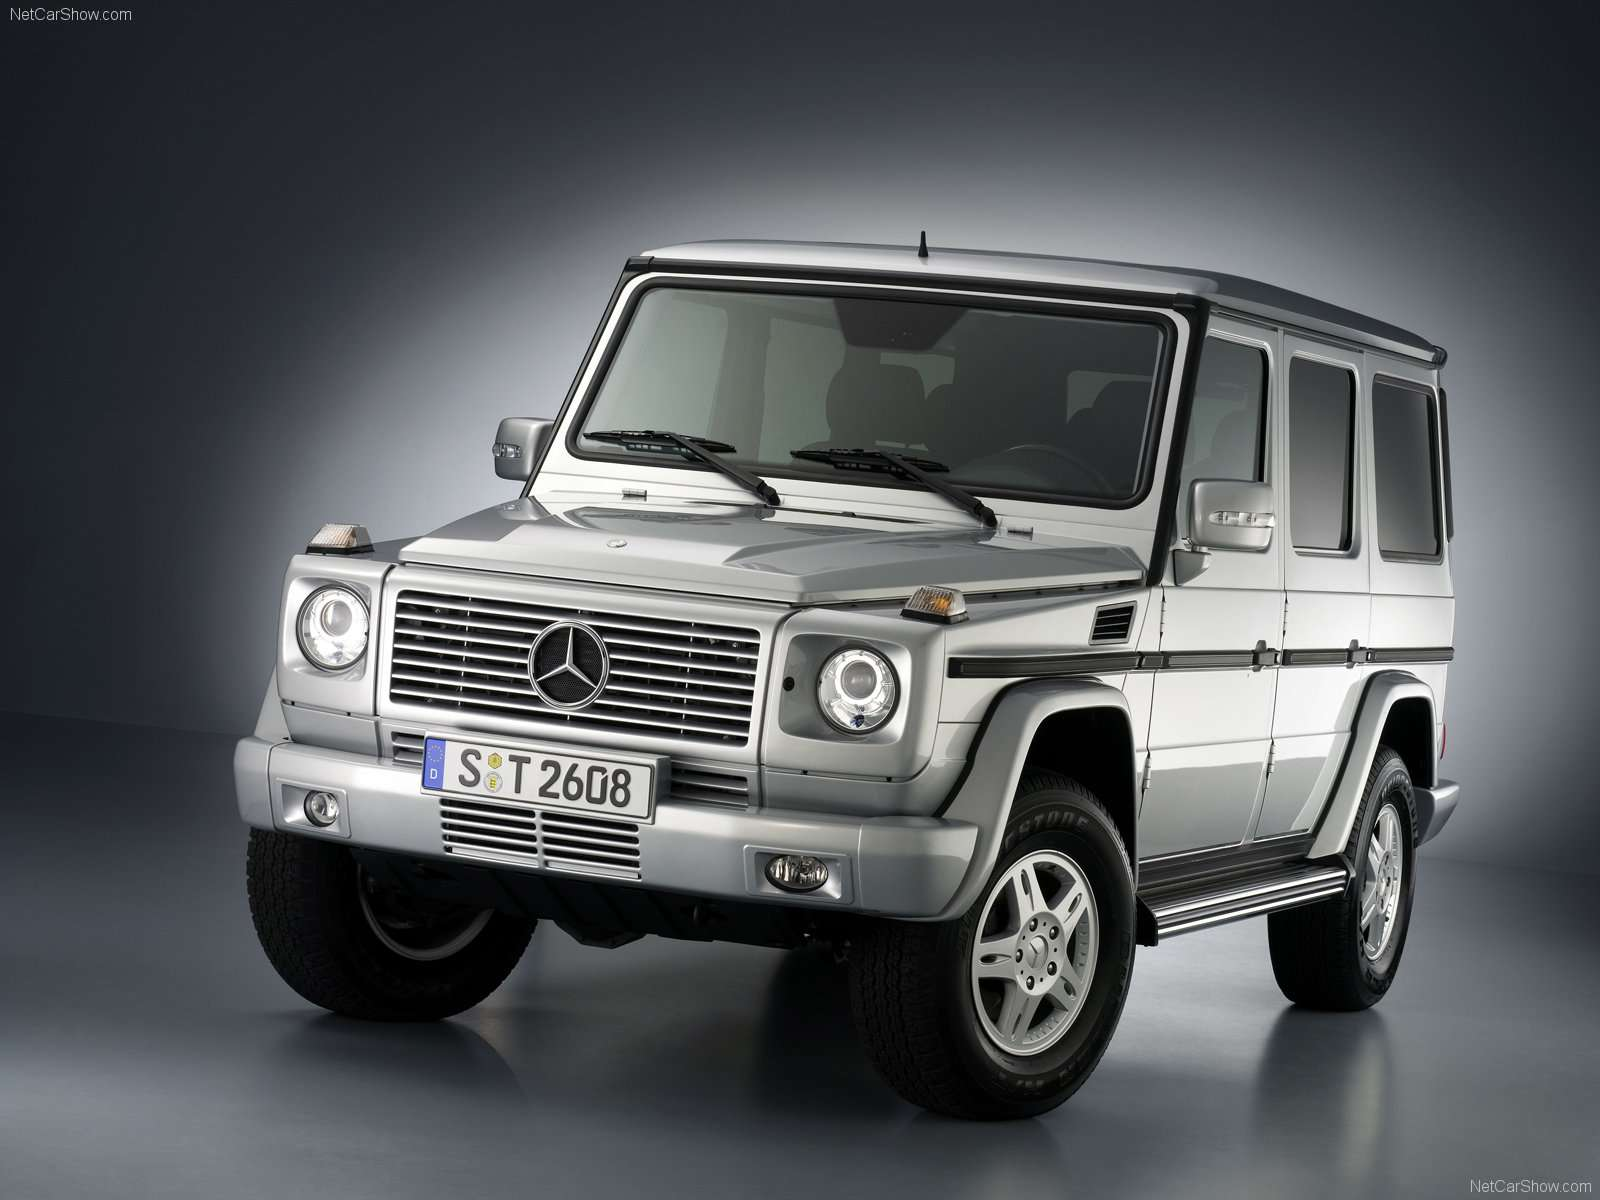 2004 Mercedes-Benz G-Class W463 Convertible wallpapers, specs and ...